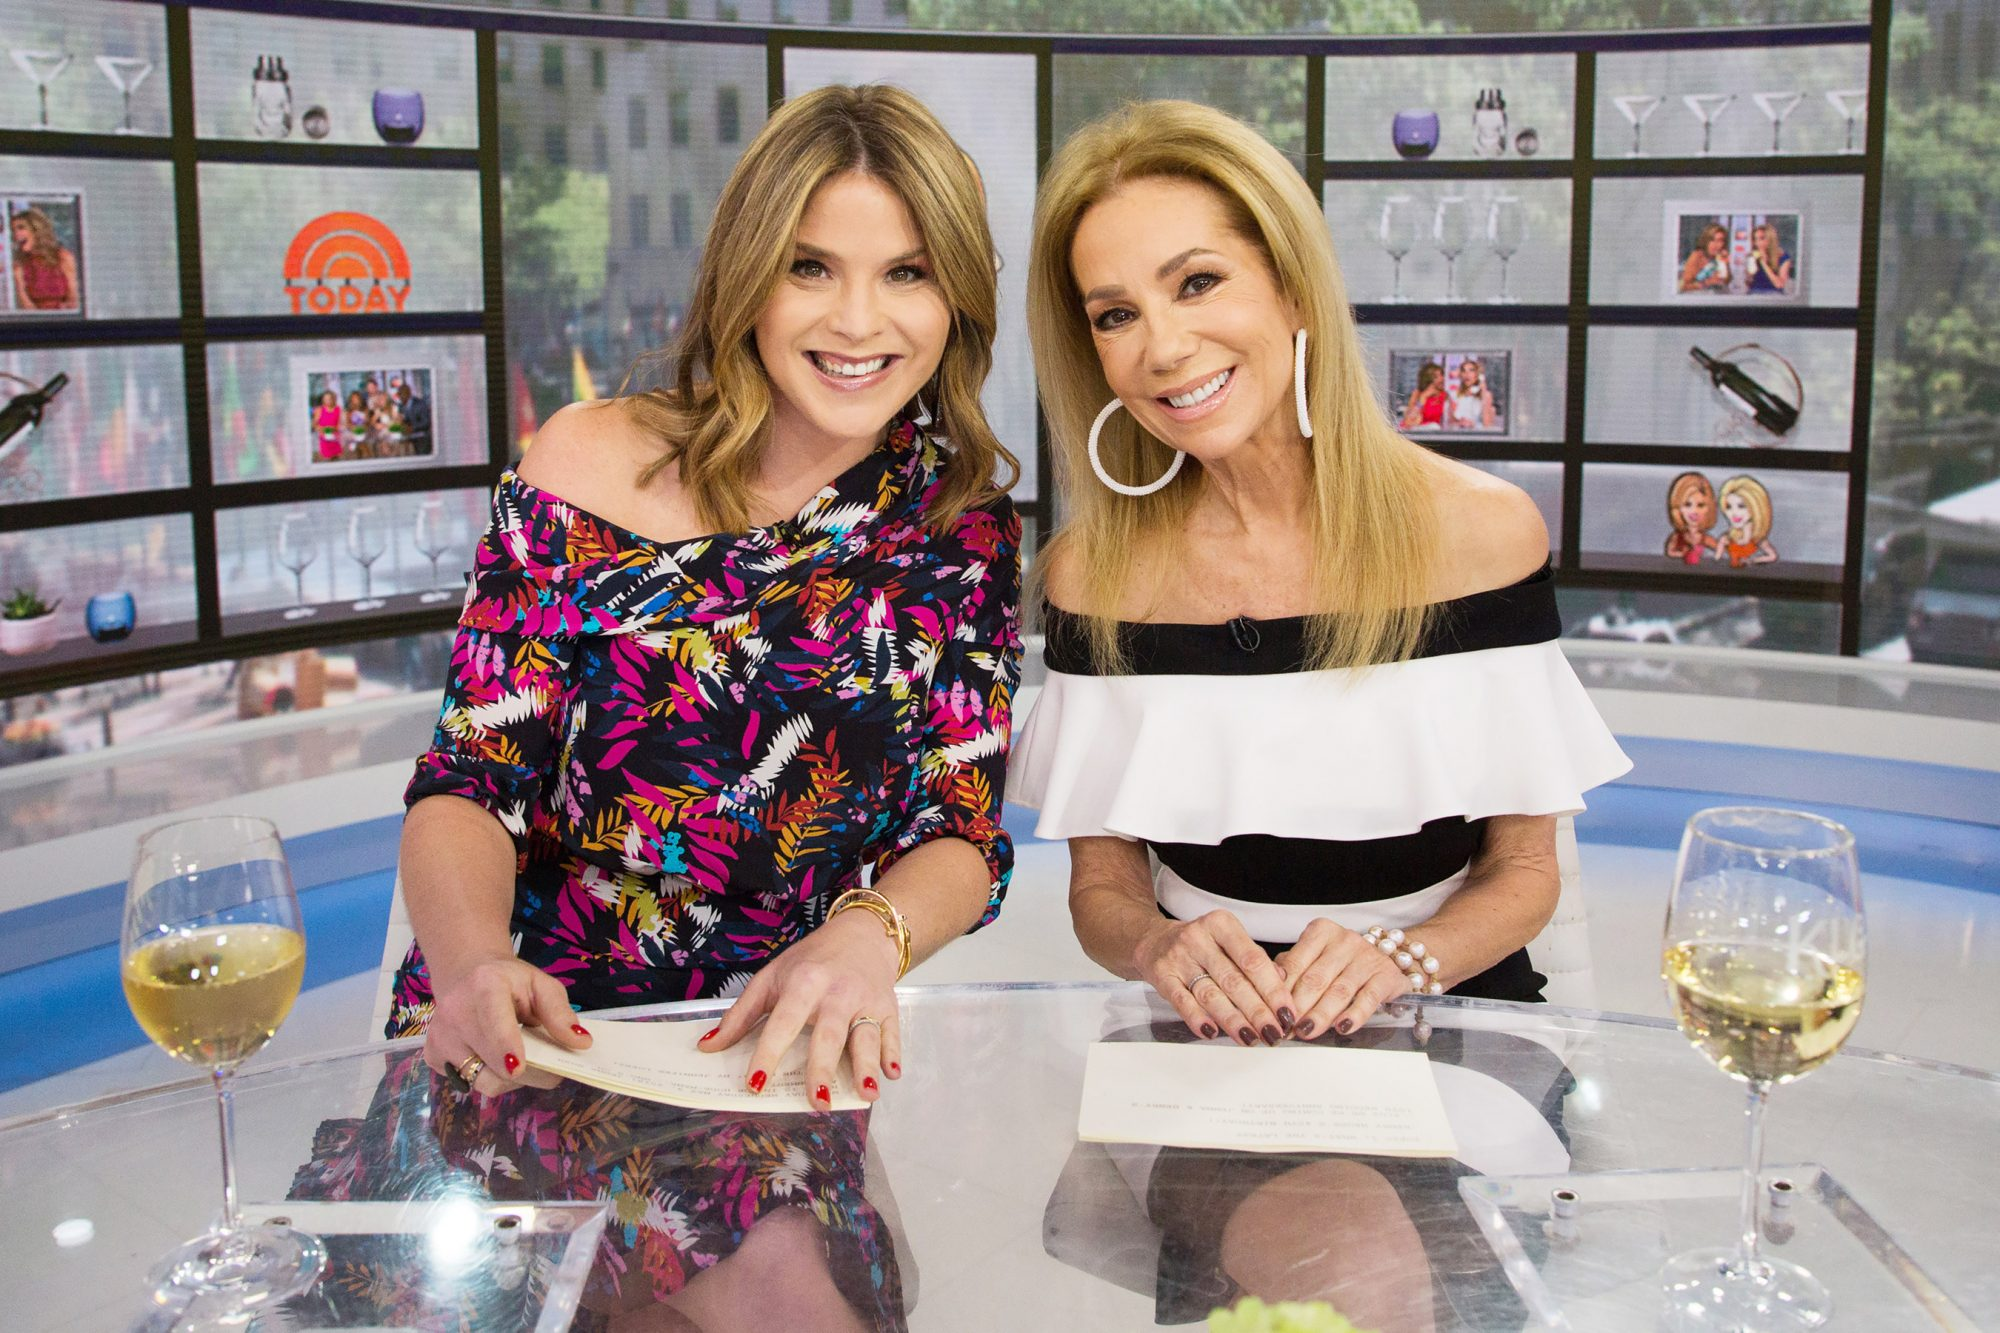 Kathie Lee Gifford Praises Jenna Bush Hager as She Takes on Today's Fourth Hour: 'You Earned It' jenna-hager